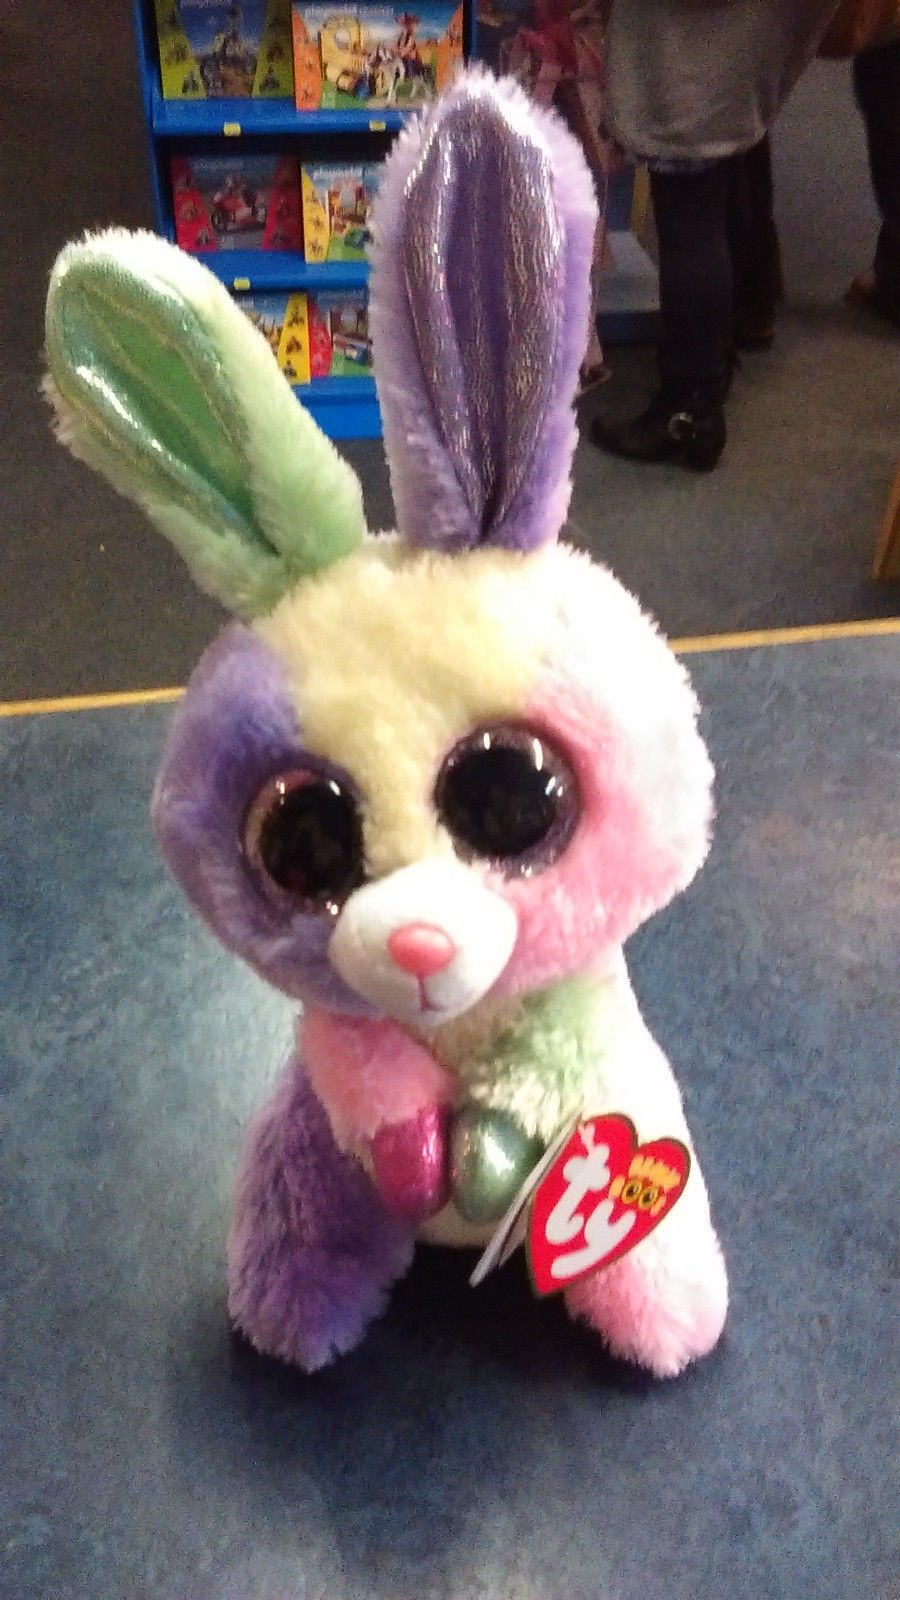 f1d81764f7d TY Beanie Boo Plush - Bloom the Bunny 15cm (Easter Special 2015) - Limited